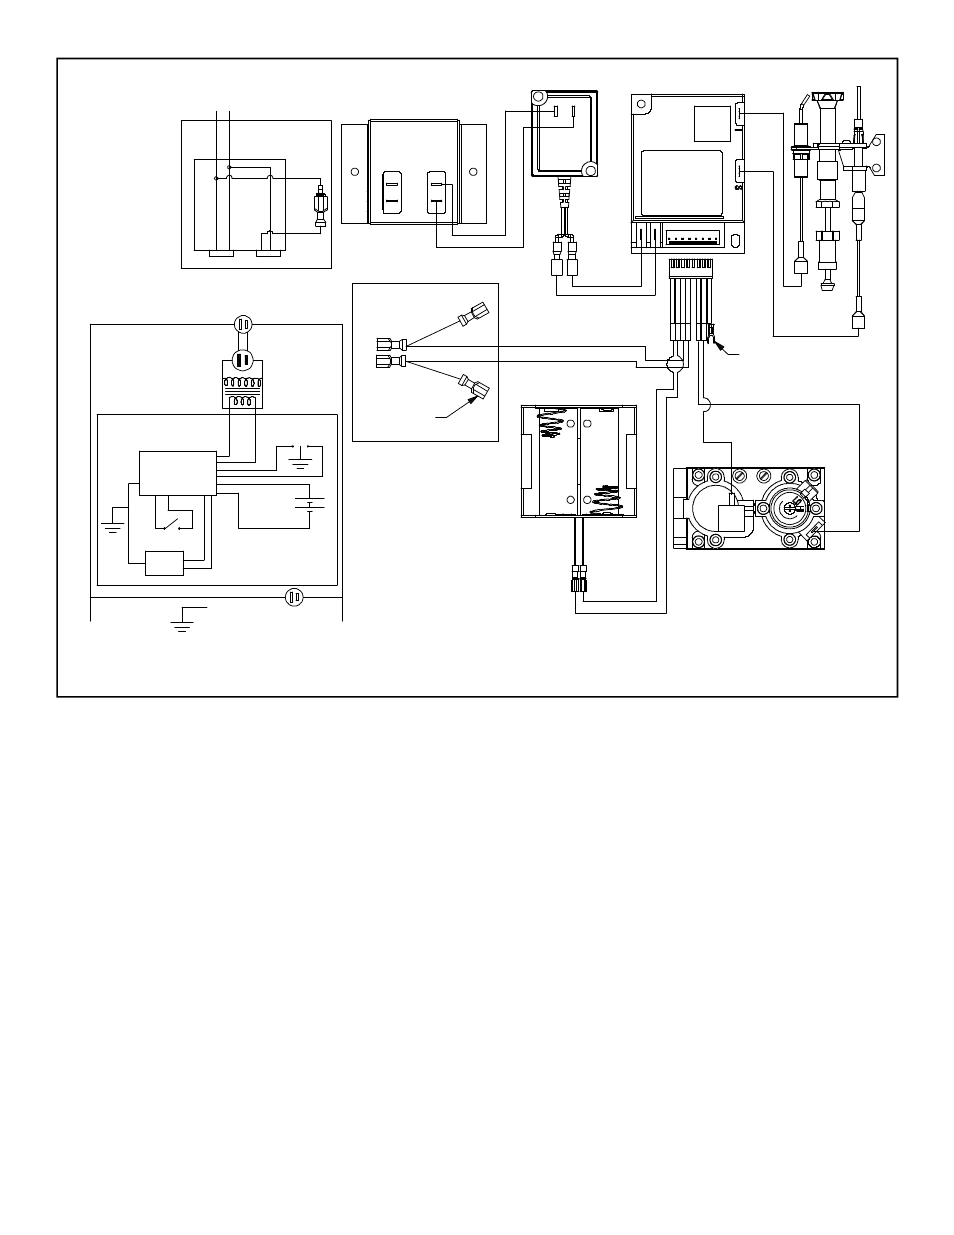 hight resolution of for intermittent pilot ignition ipi wiring hearth and home technologies gas stove l corner trc user manual page 36 40